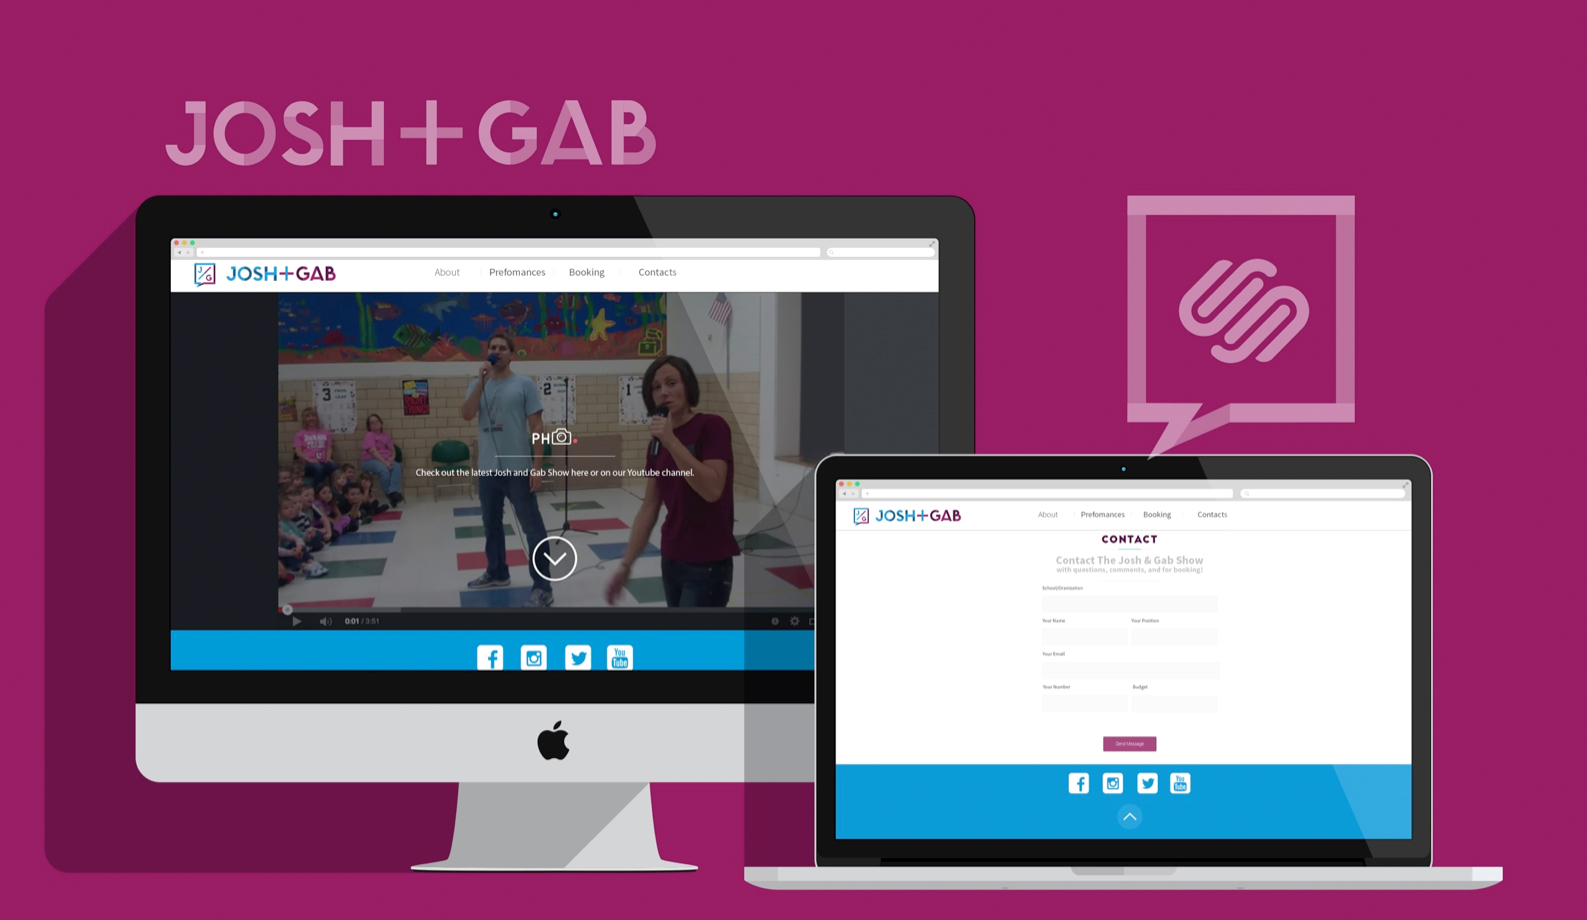 JOSH + GAB NEW WEBSITE